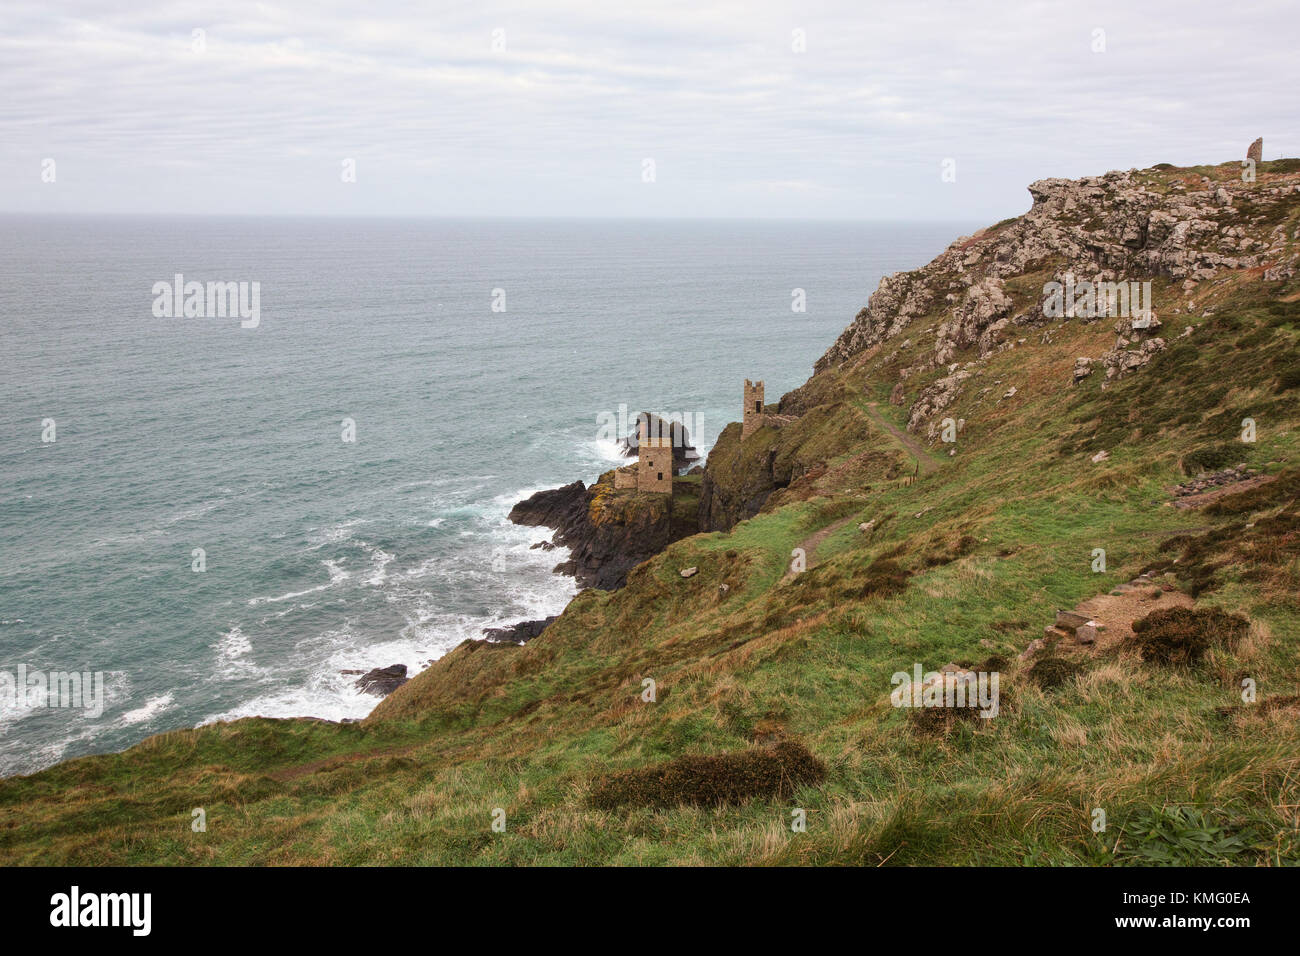 An ancient tin mine Botallack sits on the edge of a cliff in Cornwall in the South east of England. - Stock Image